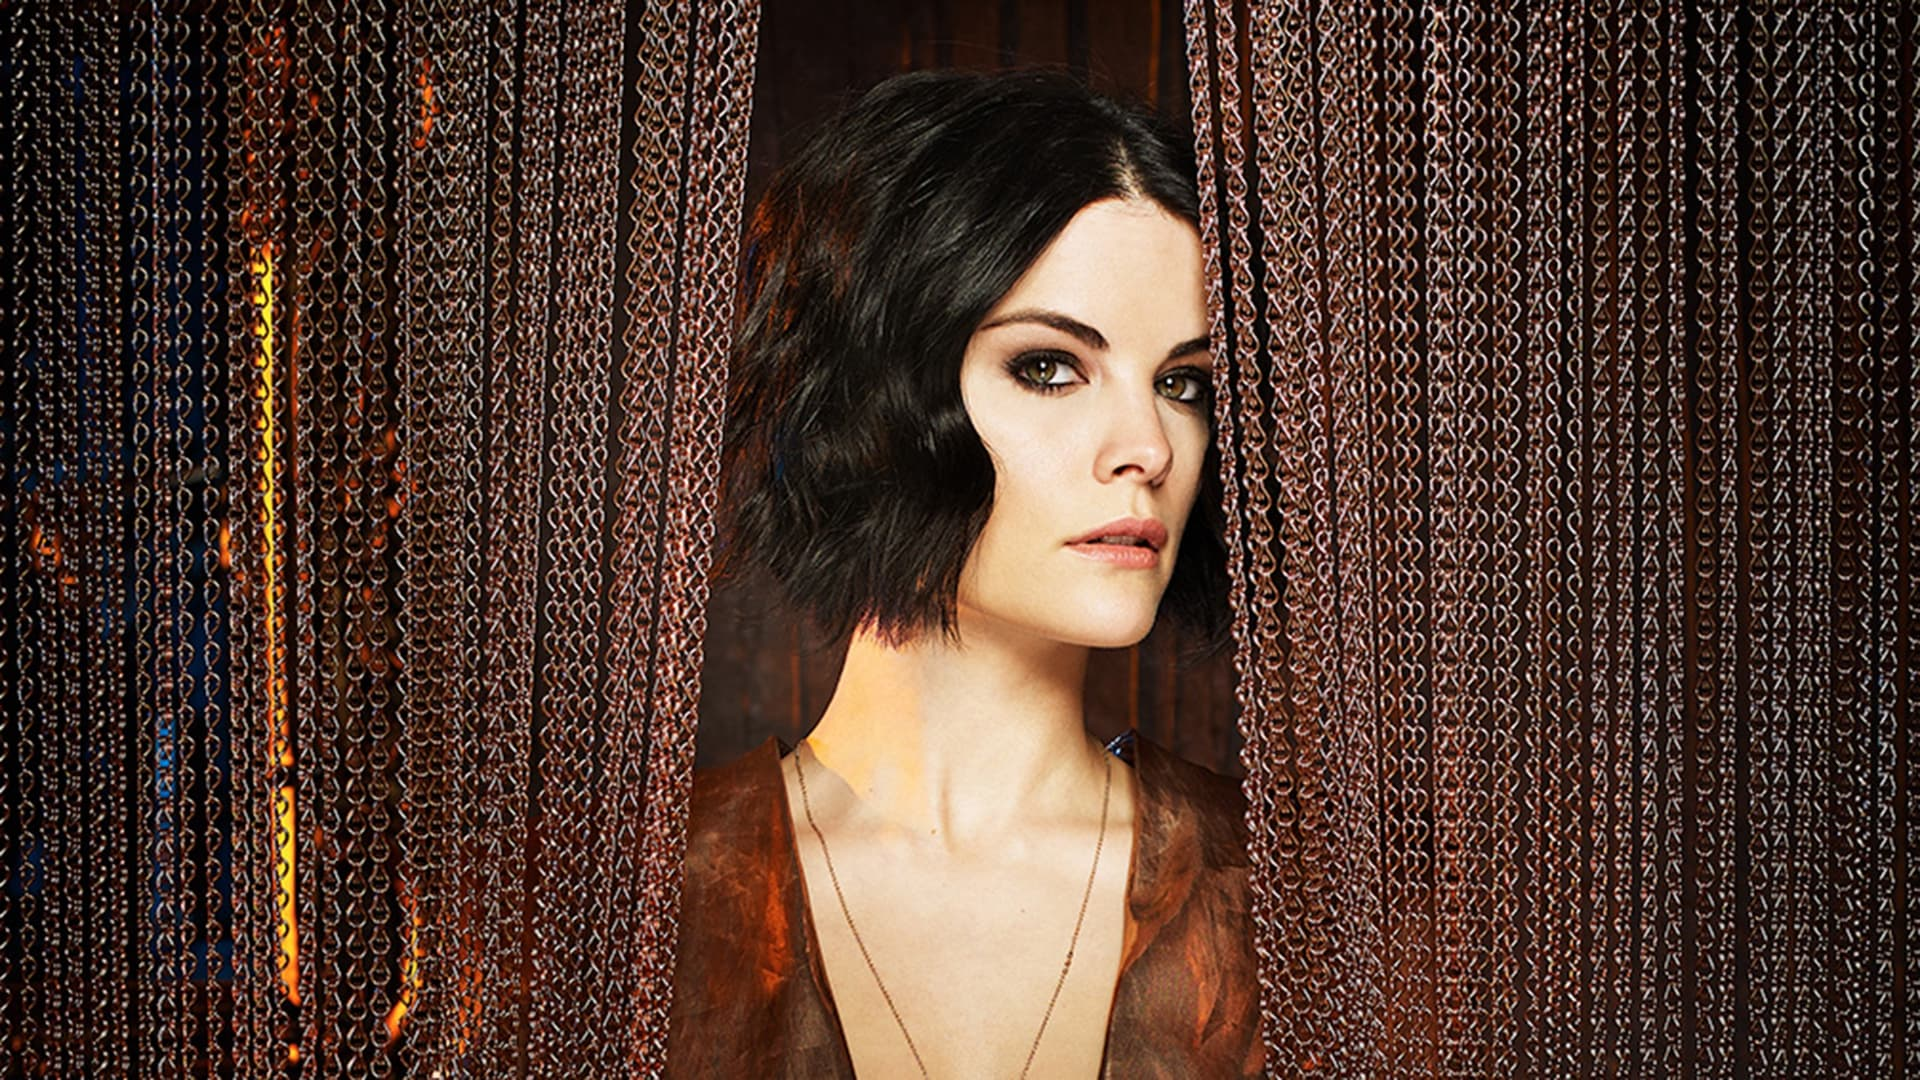 16 Jaimie Alexander Wallpapers Hd High Quality Resolution